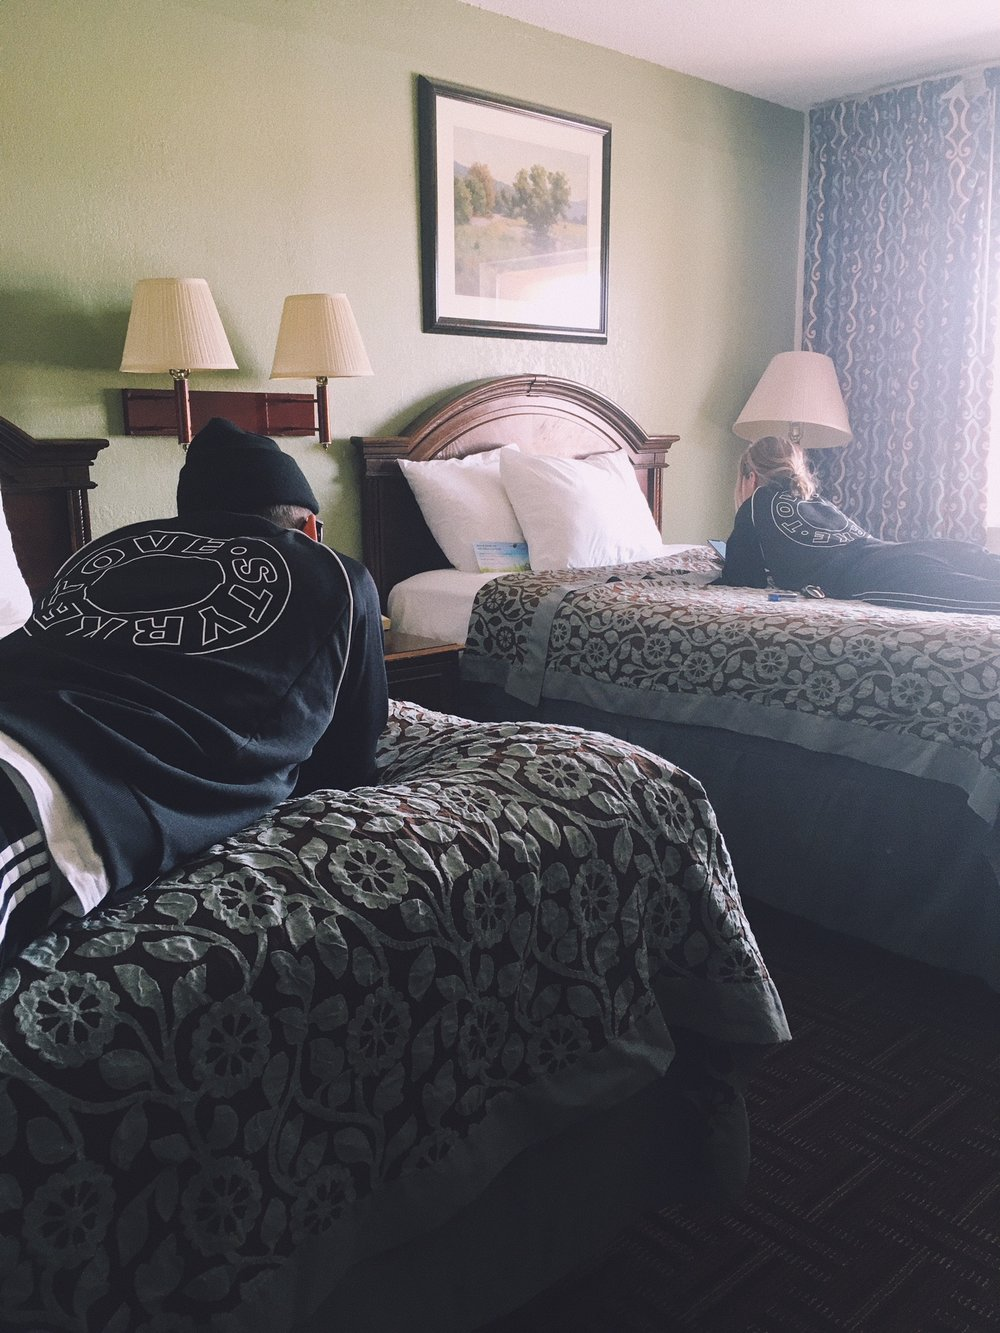 This is how we spend most of our days off. At a motel in the middle of nowhere  . | Photo Credit: Sanna Sikborn Erixon